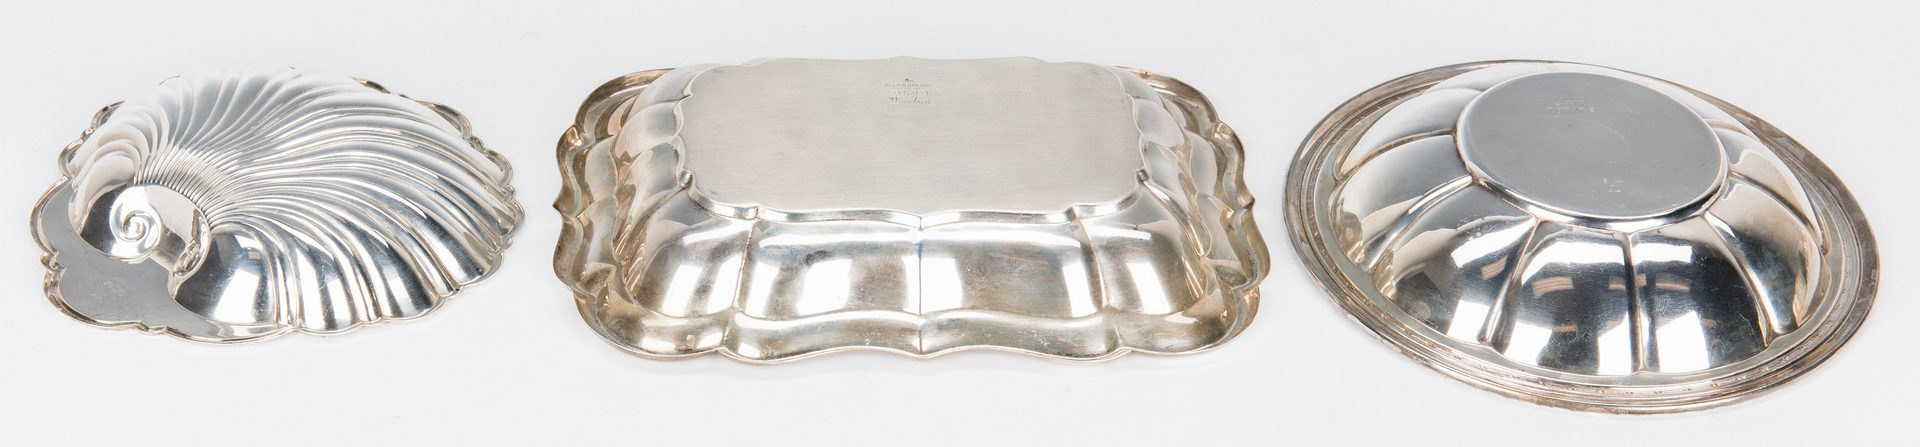 Lot 160: 17 Sterling Silver Items and Lutz & Weiss .835 bowl